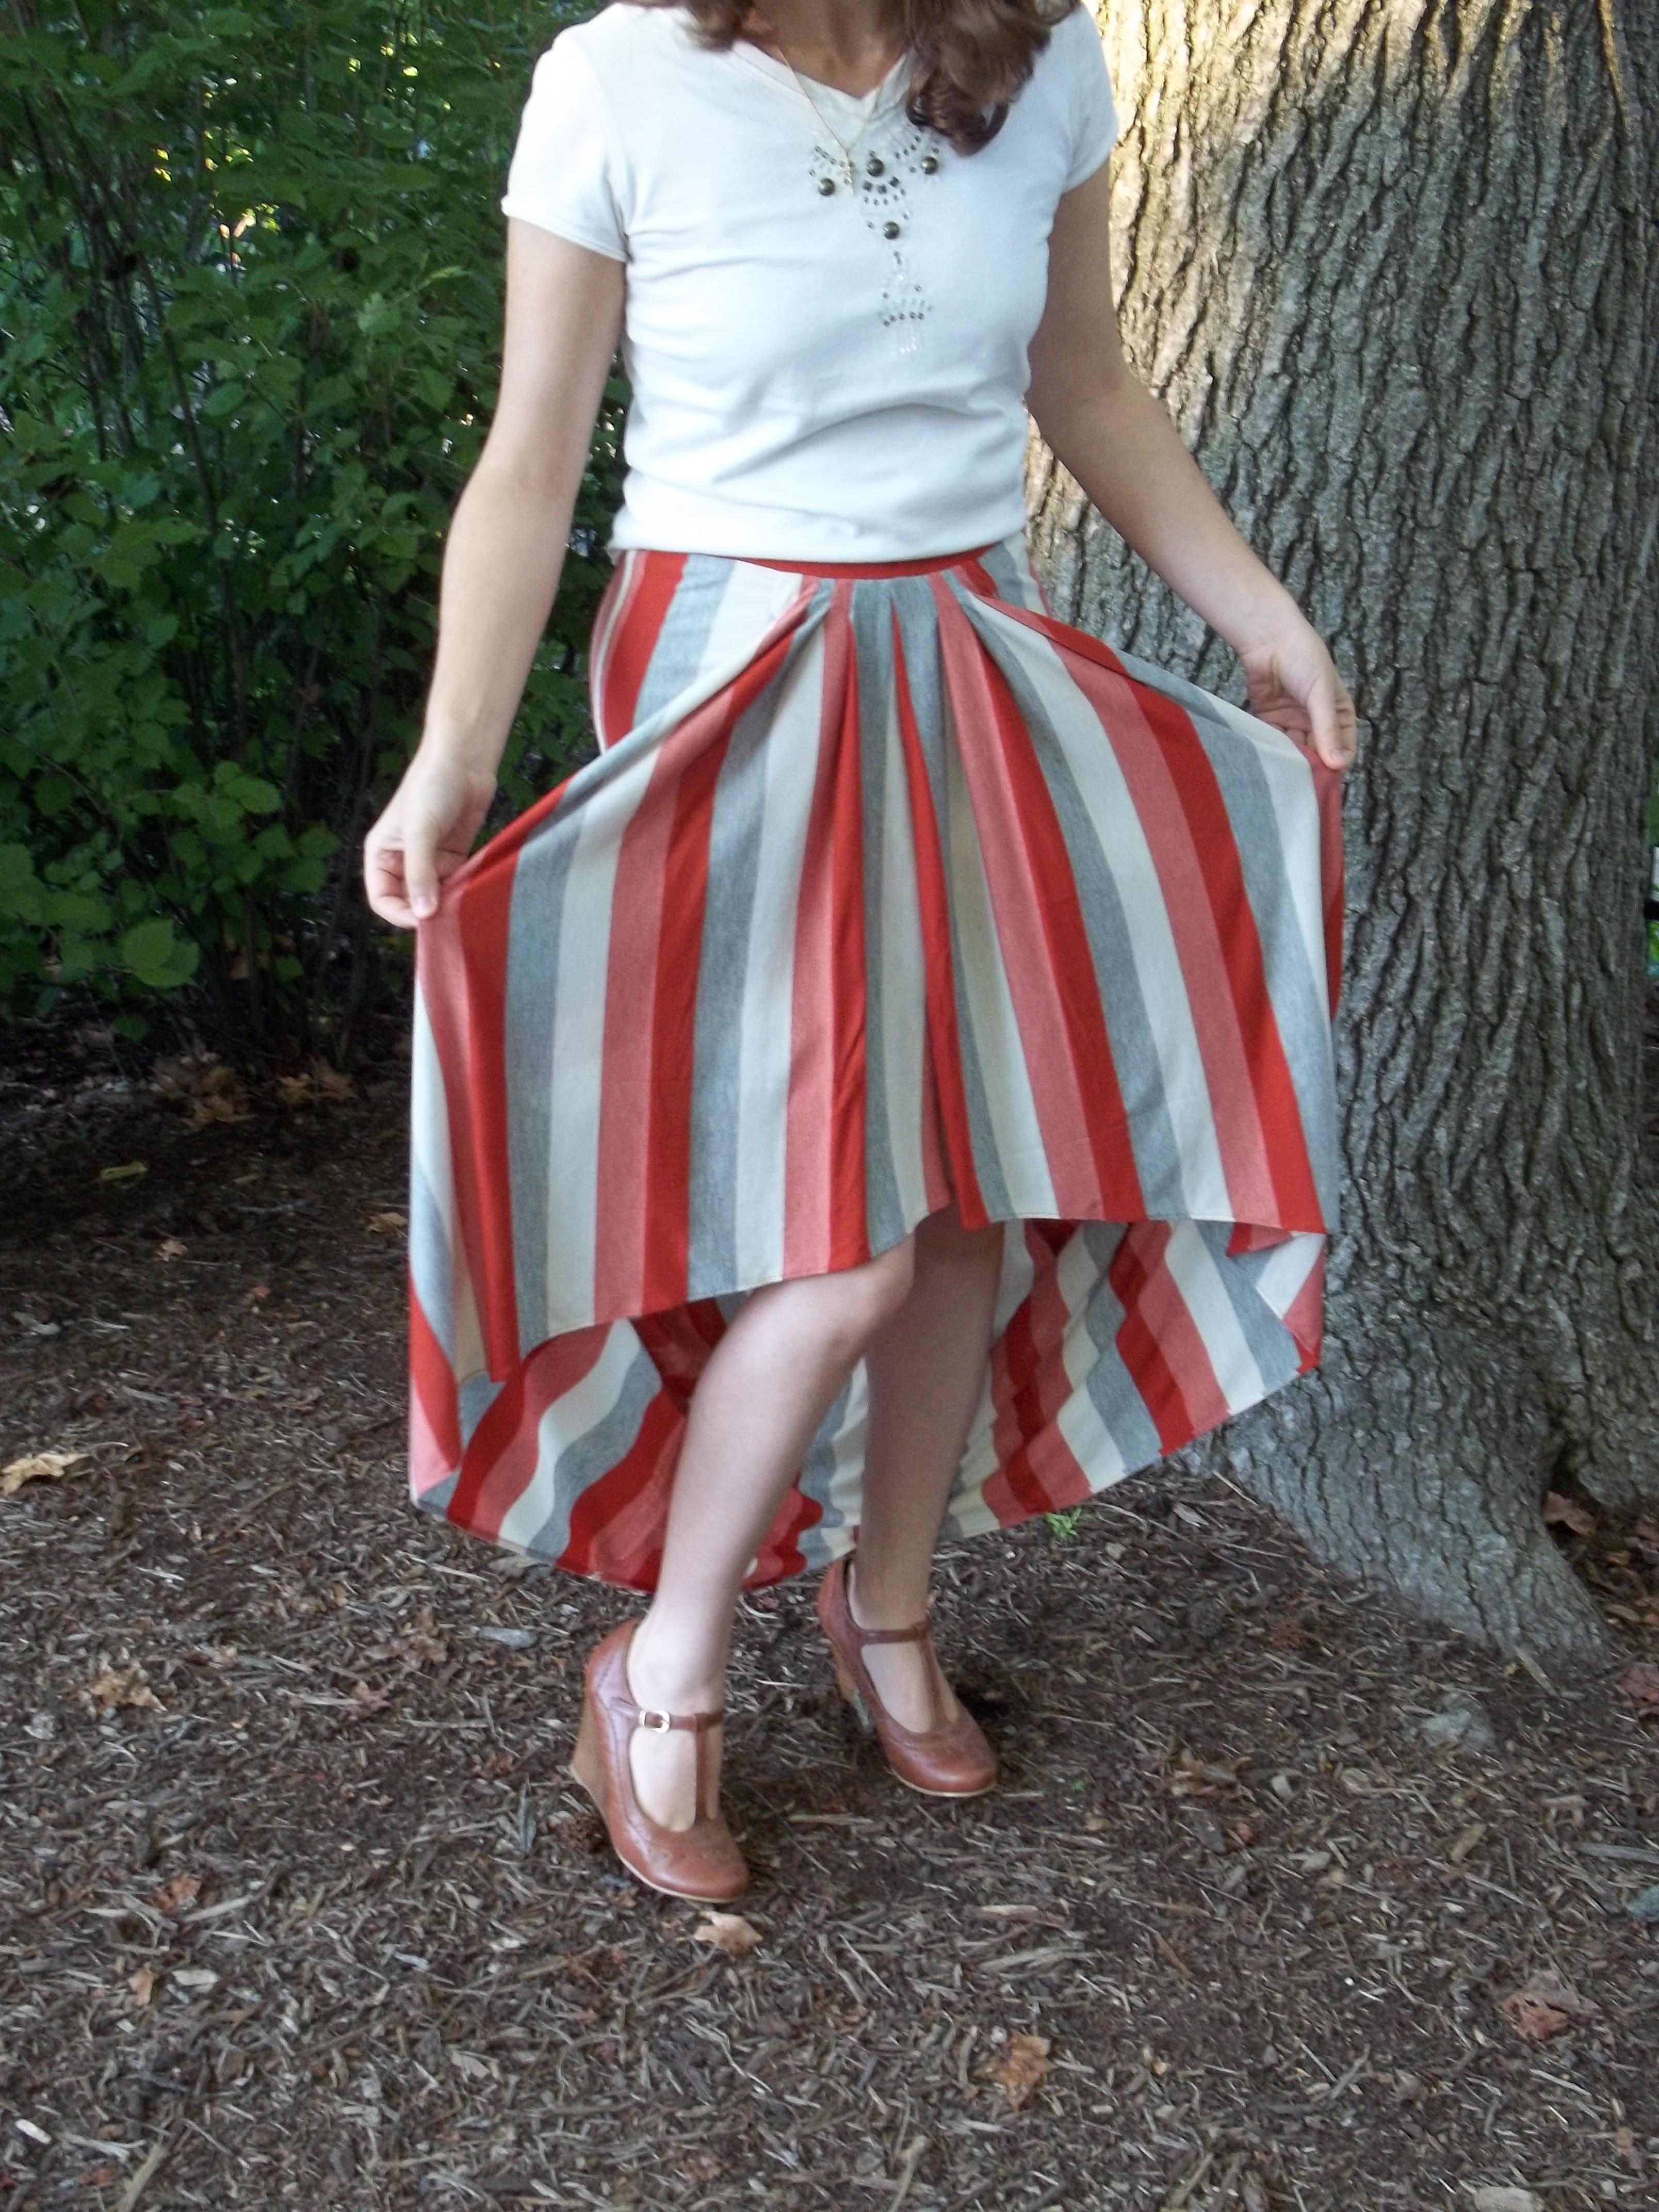 Skirt with a train: history and modernity